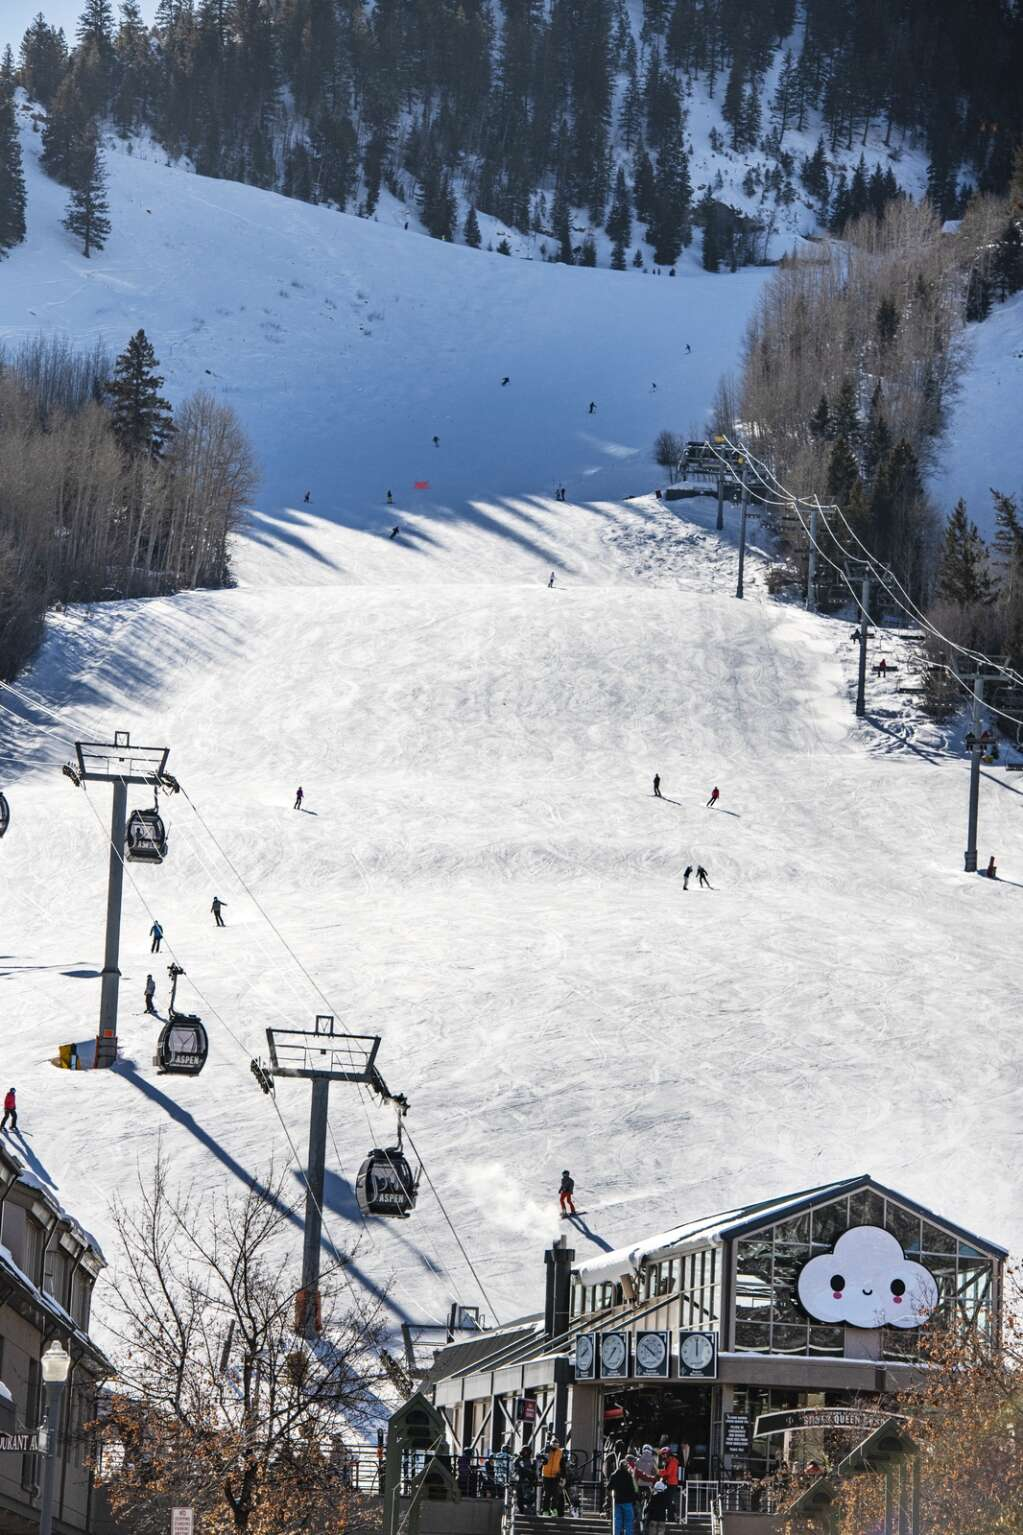 Skiers carve down Little Nell to the Silver Queen Gondola with a FriendsWithYou Little Cloud installation at Aspen Mountain on Wednesday, Jan. 6, 2021. (Kelsey Brunner/The Aspen Times)